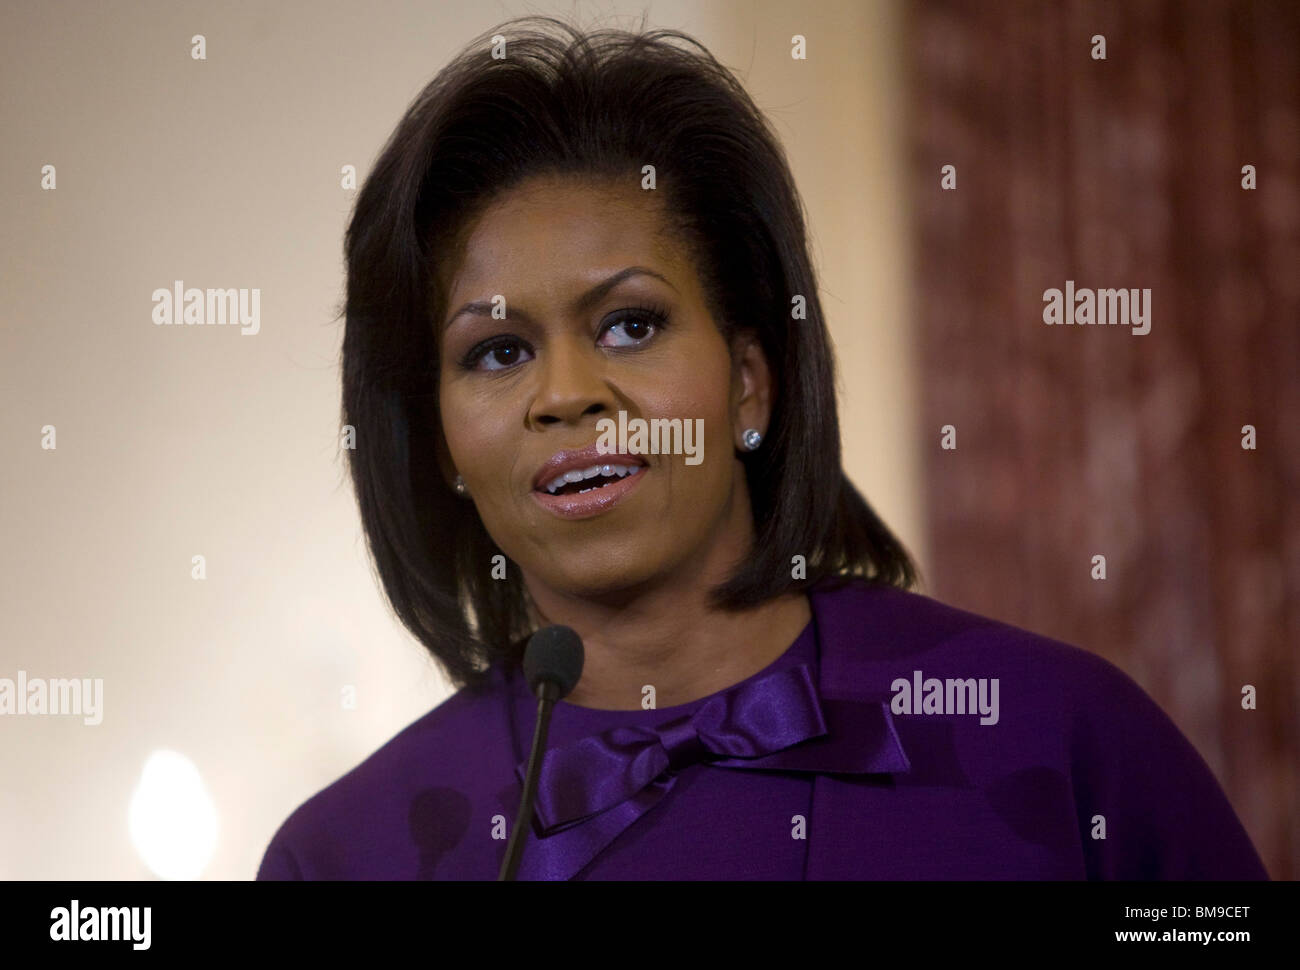 First Lady Michelle Obama. Stock Photo